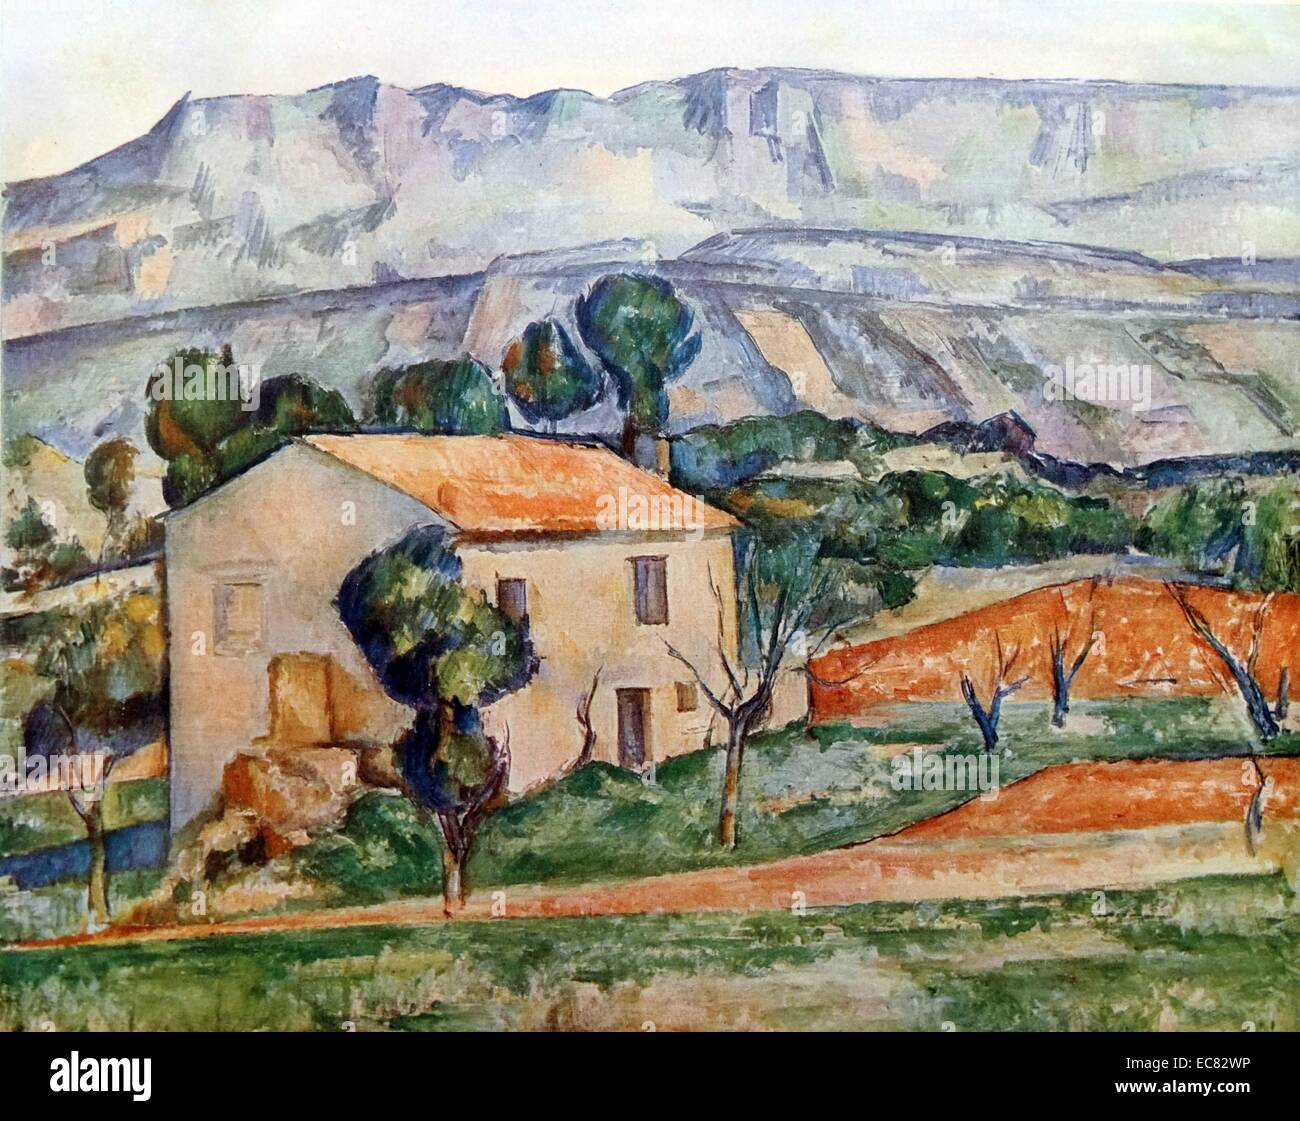 Painting titled 'House in front of Mont Sainte-Victoire' - Stock Image